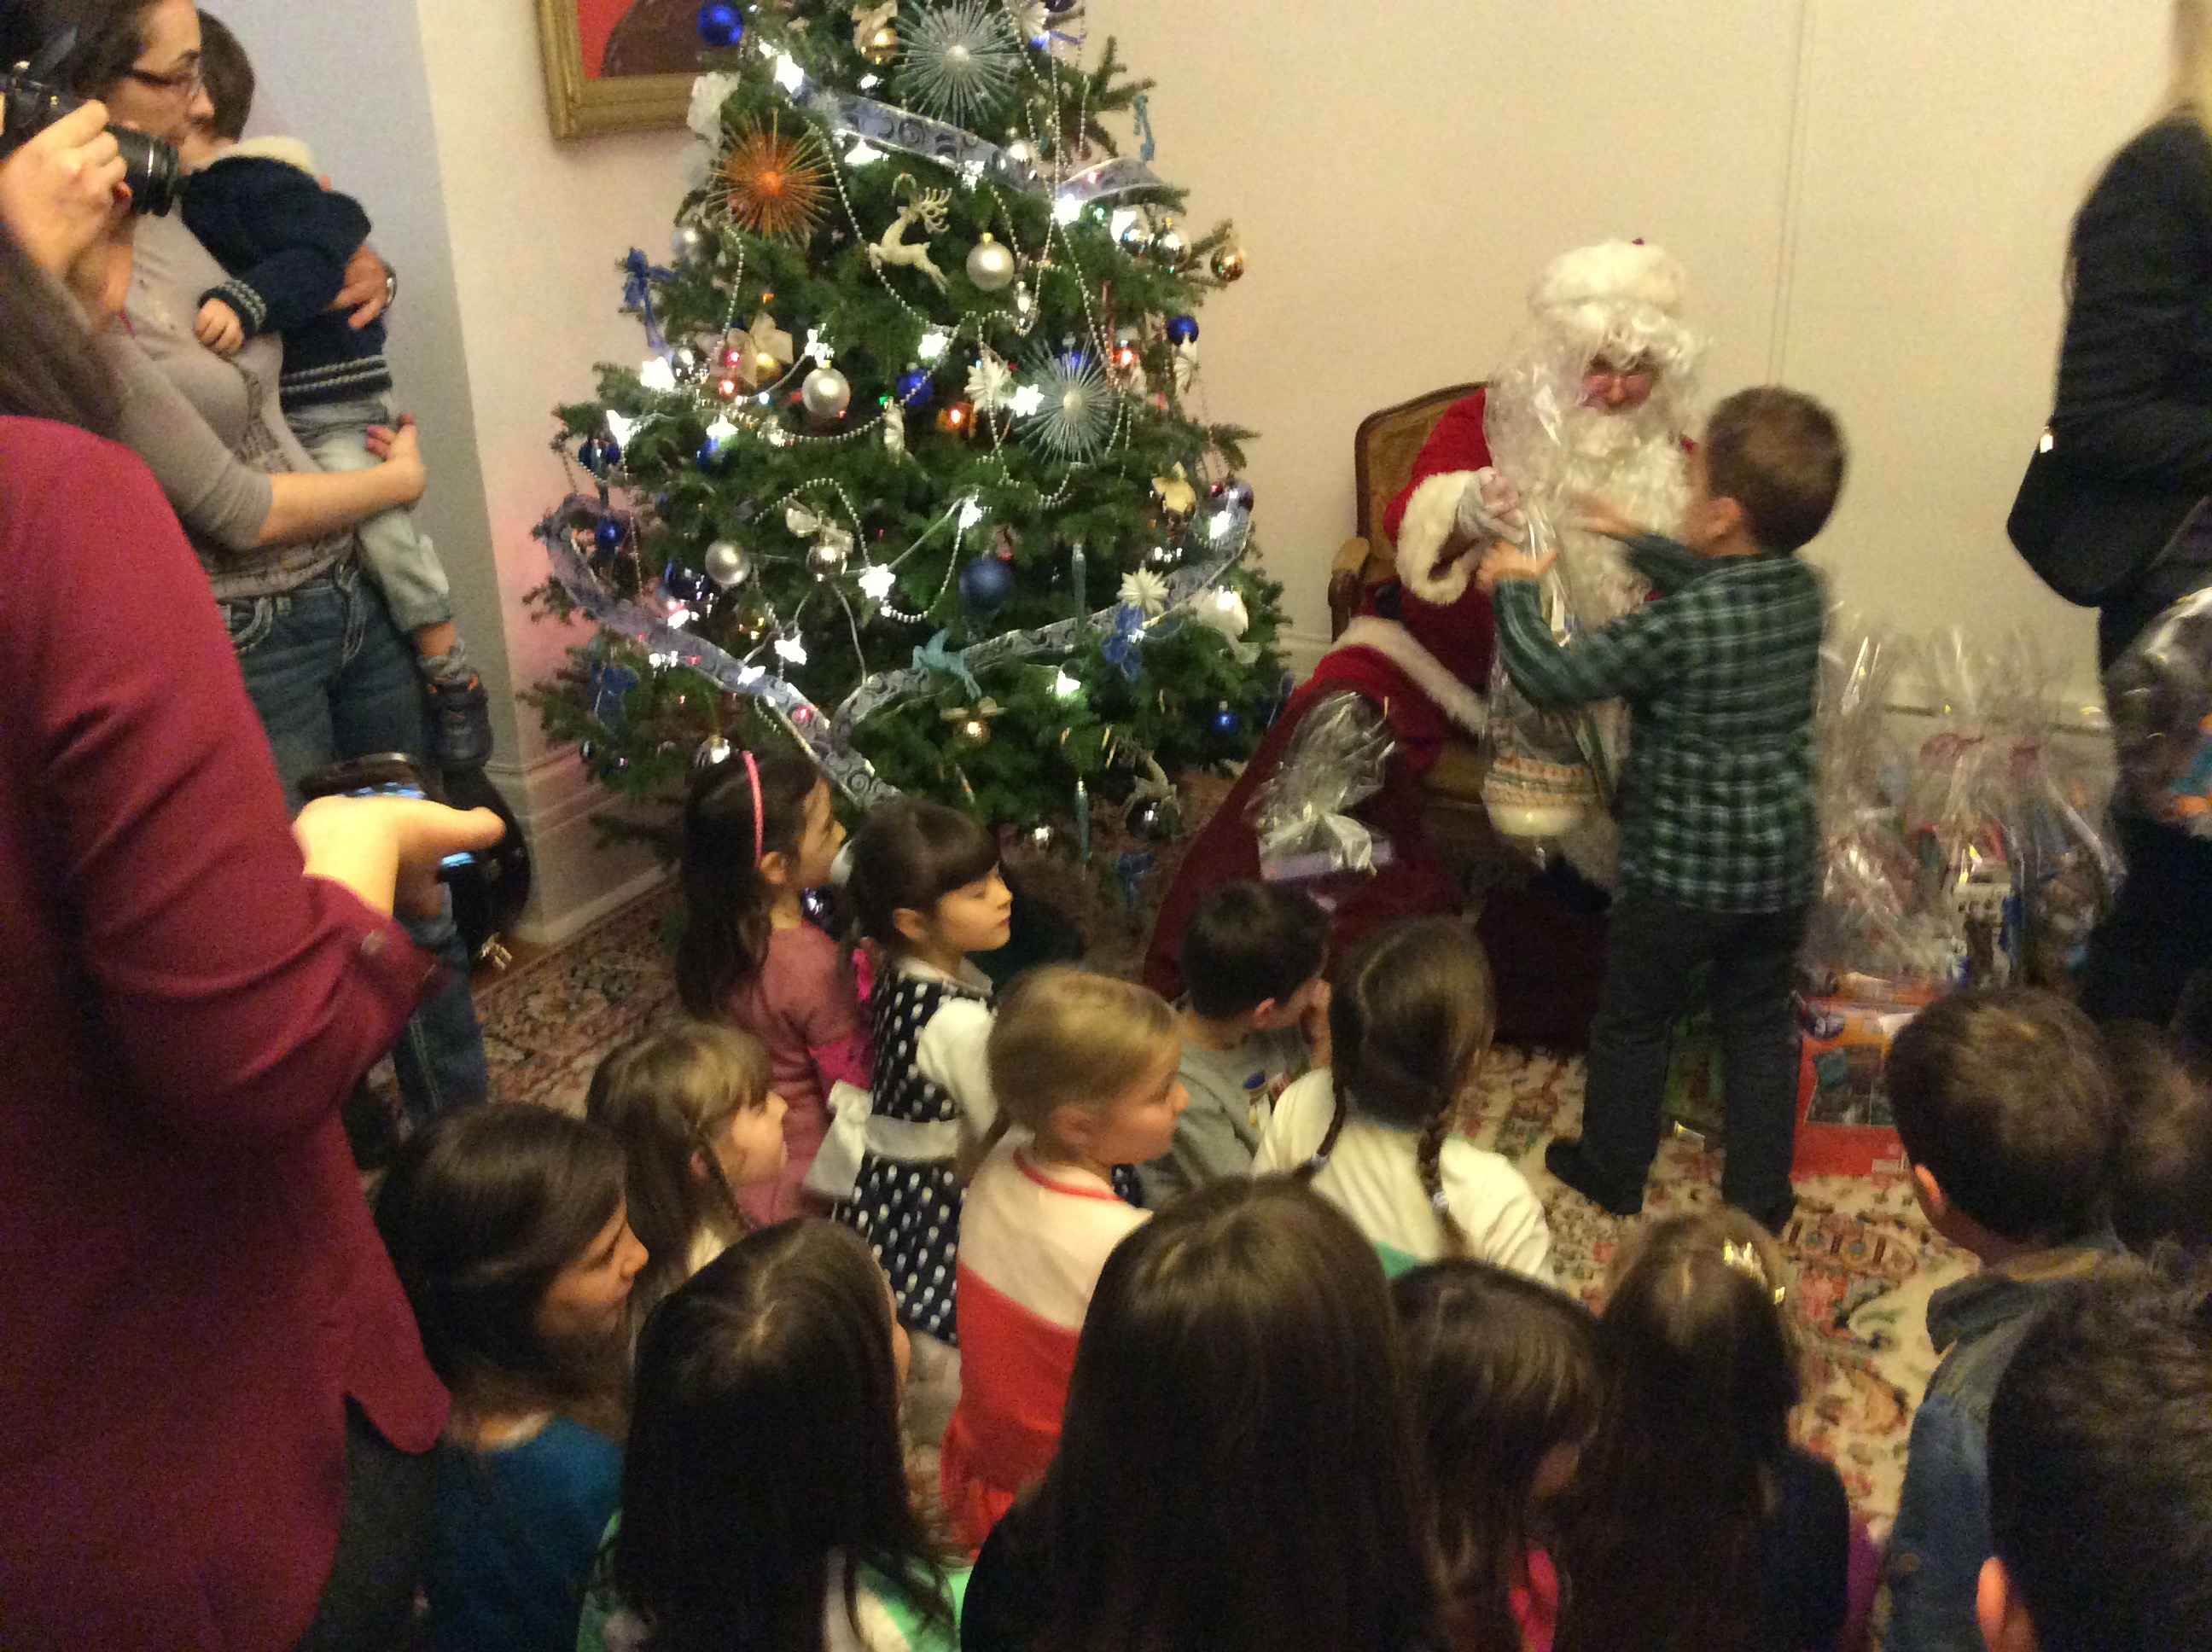 Embassy of the republic of serbia in canada at the embassy of the republic of serbia was held event for children on the occasion of the arrival of santa claus programme and presents were organized spiritdancerdesigns Choice Image